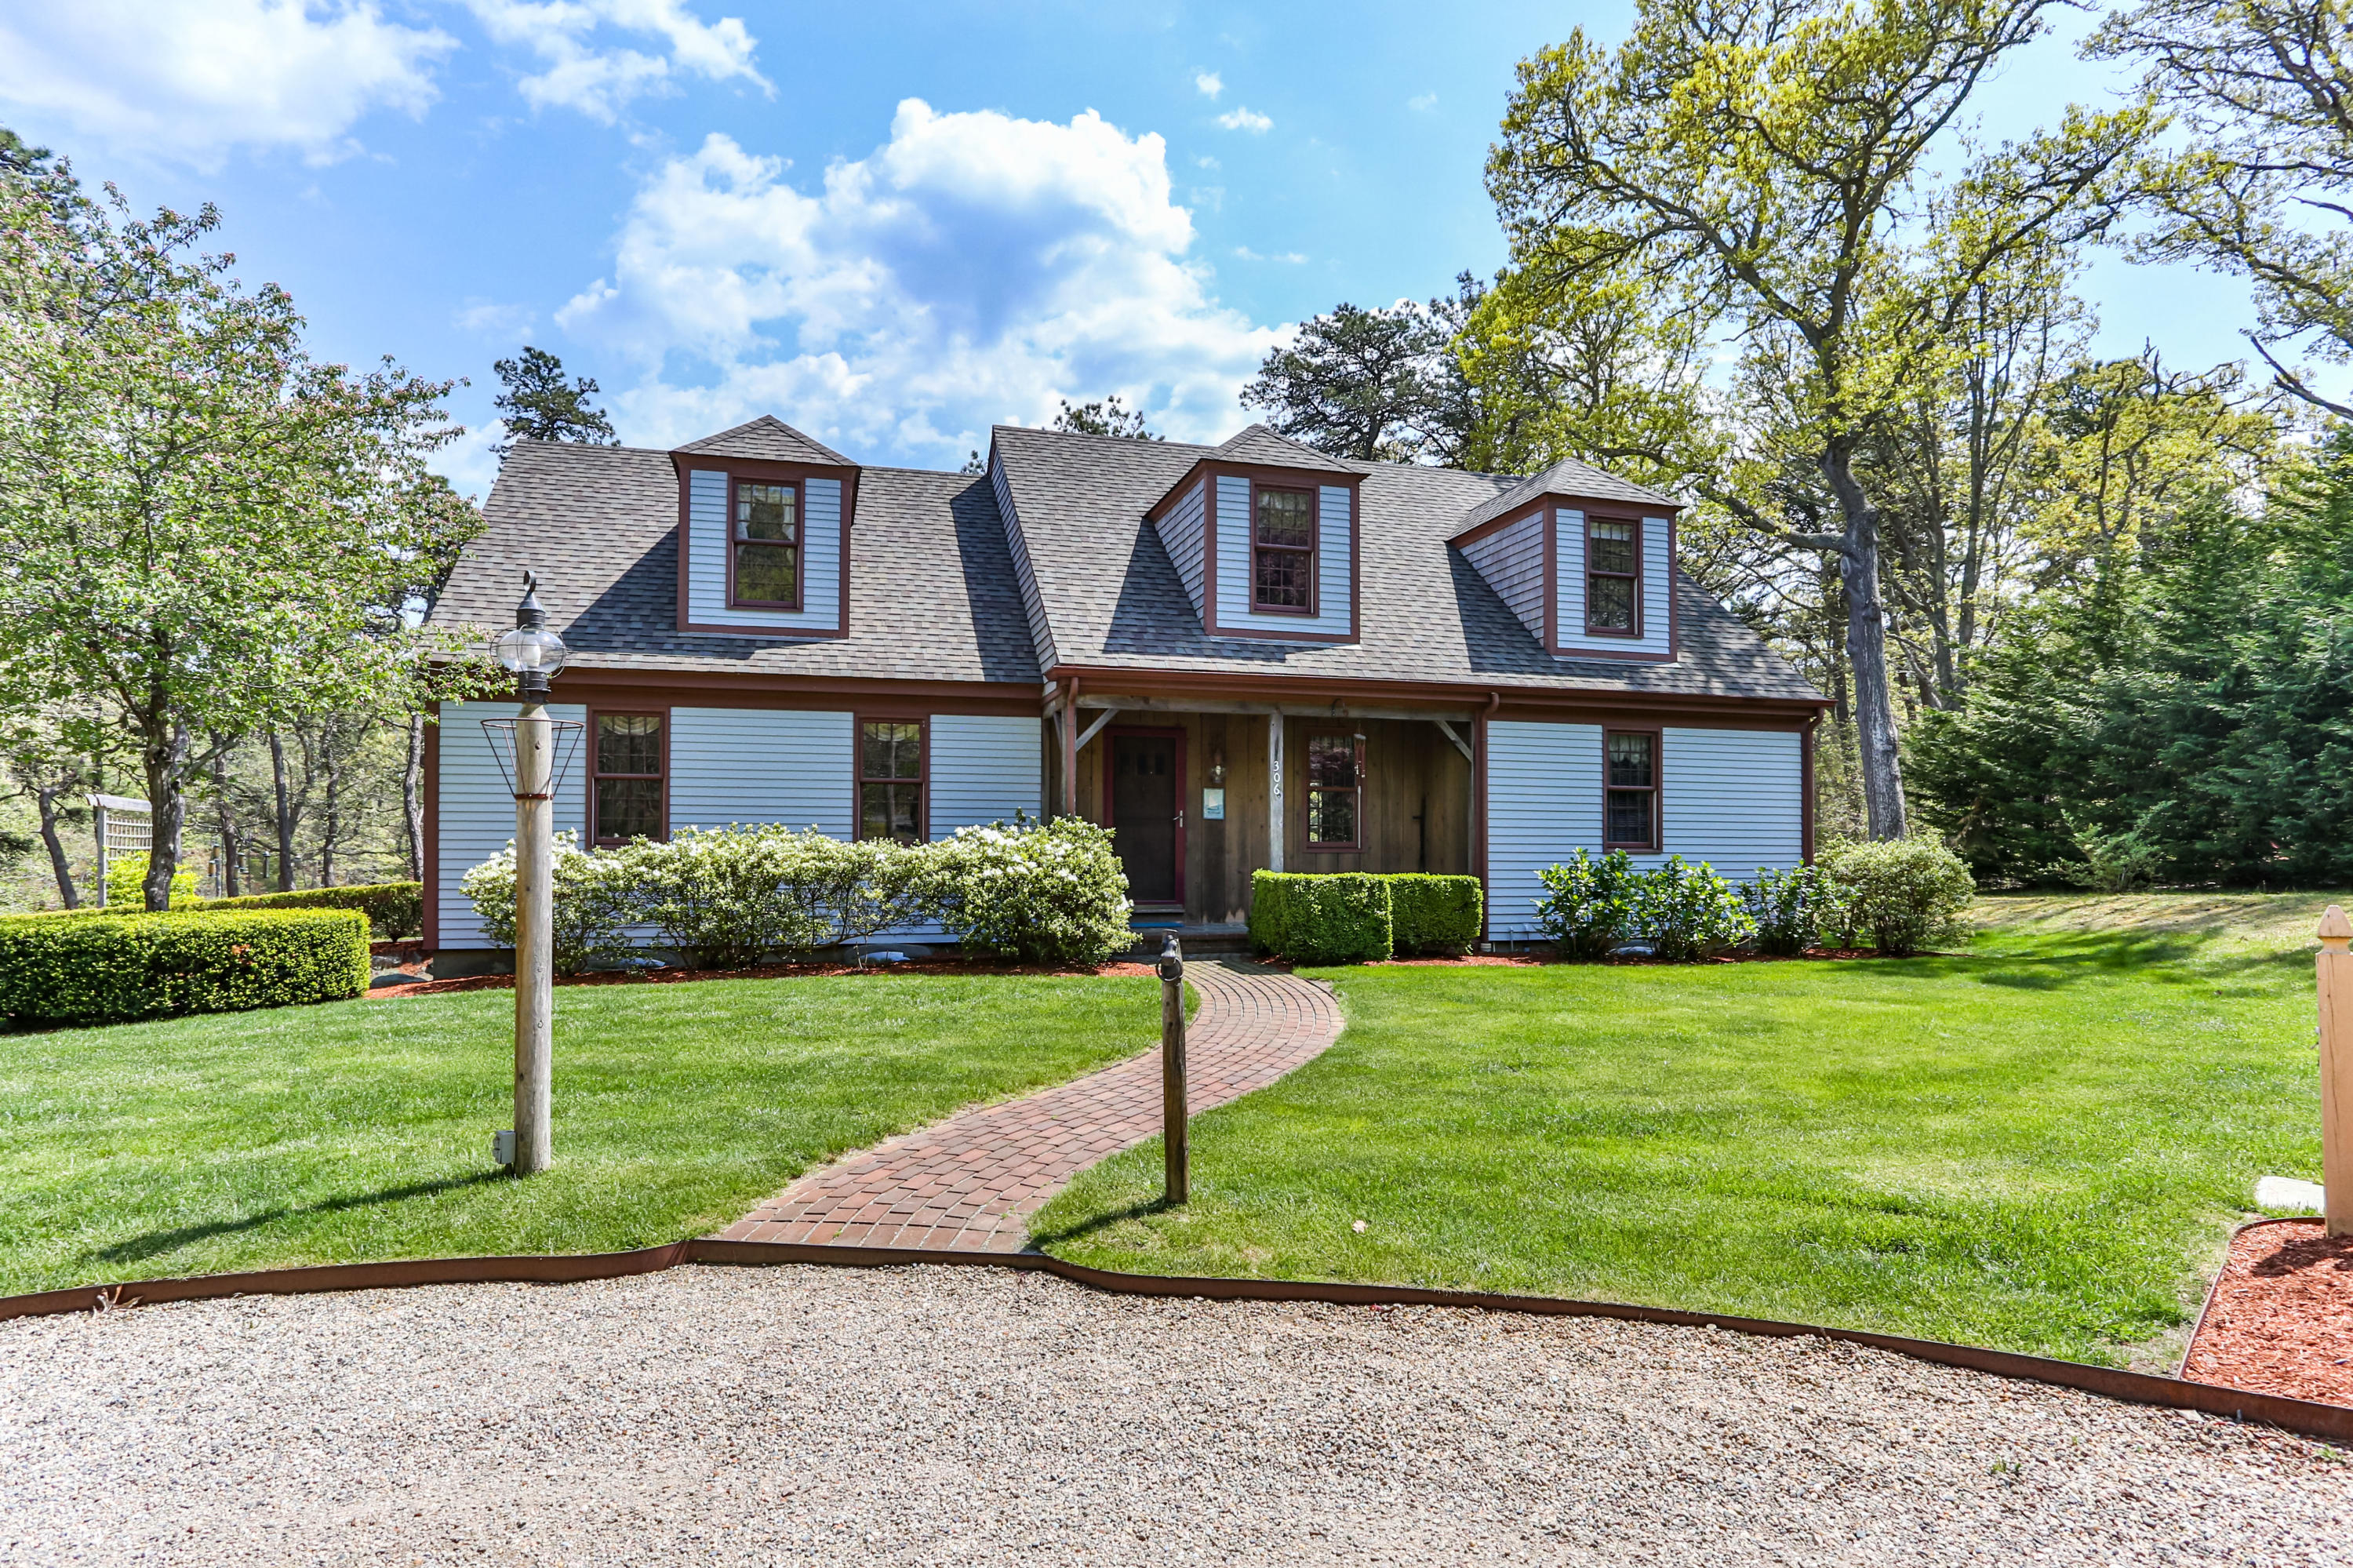 306 Old Comers Road, Chatham, MA details